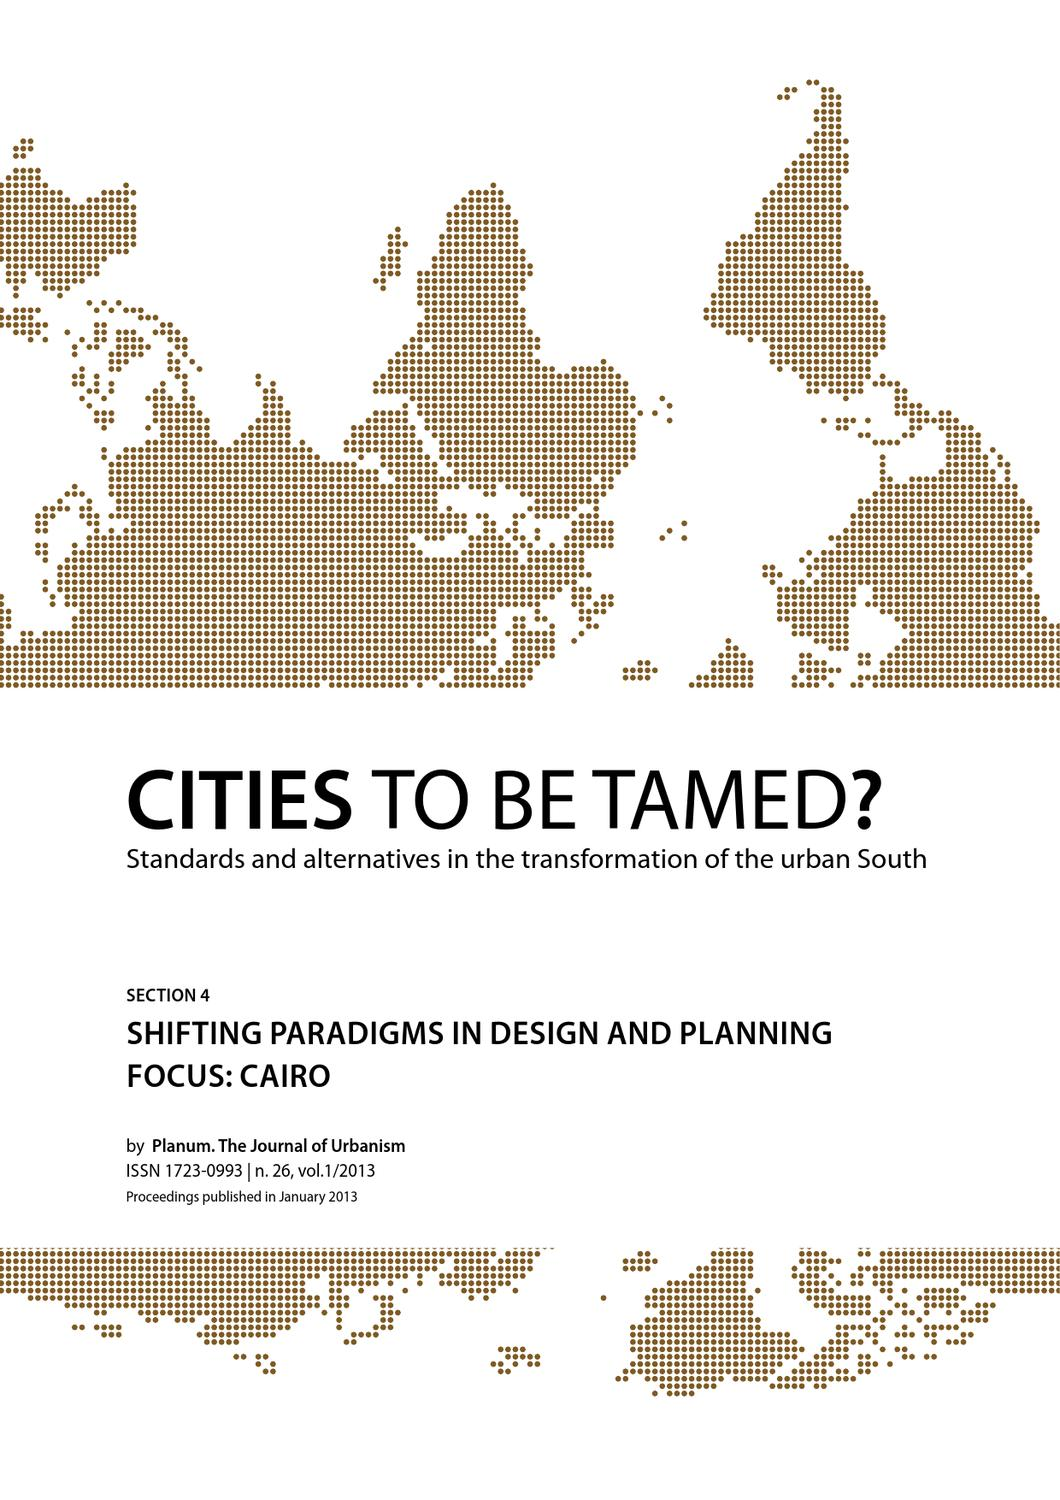 Conference Proceedings CITIES TO BE TAMED? | Full Papers Section 4 ...